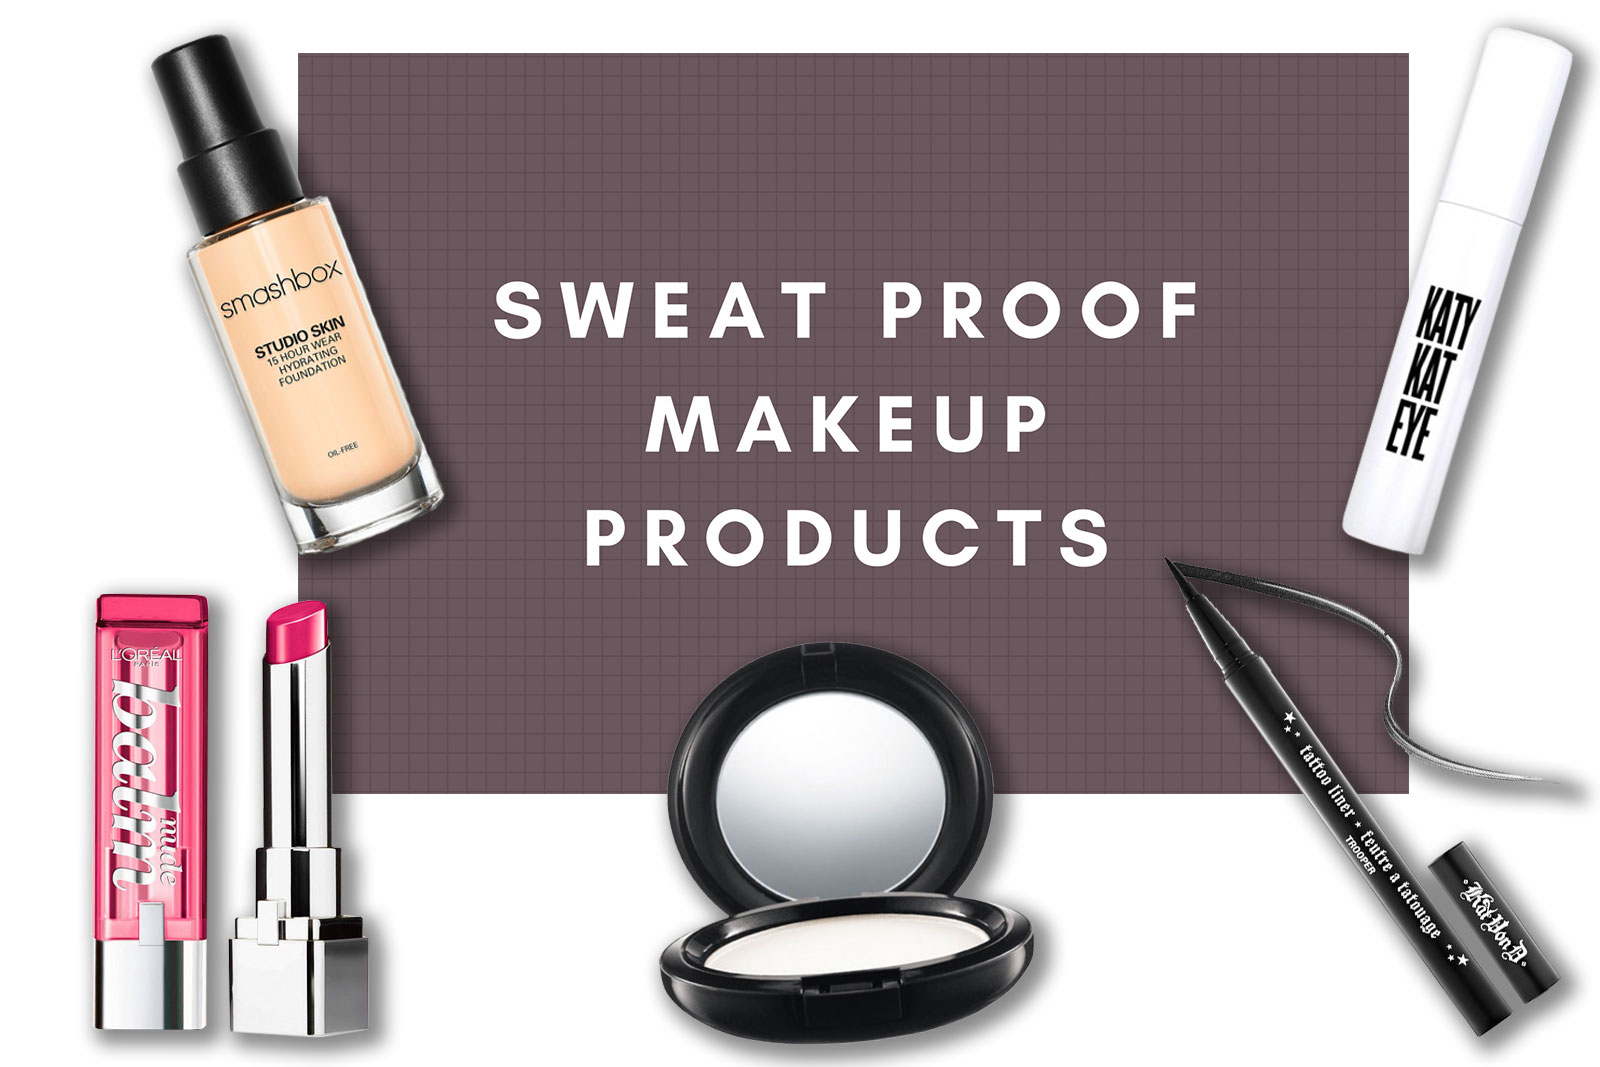 15 Hot Makeup Products You Need This Summer